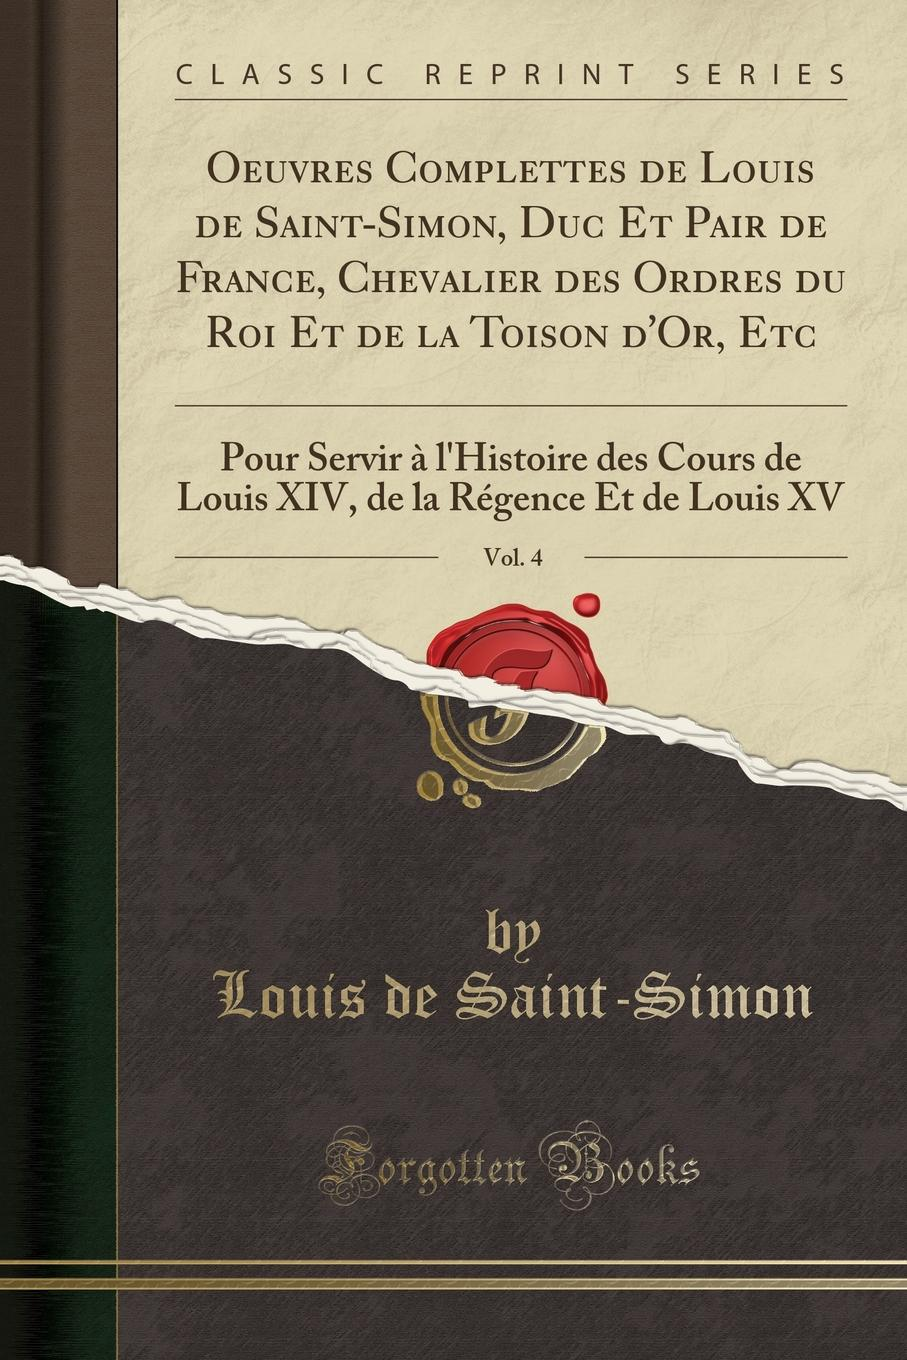 Louis de Saint-Simon Oeuvres Complettes de Louis de Saint-Simon, Duc Et Pair de France, Chevalier des Ordres du Roi Et de la Toison d.Or, Etc, Vol. 4. Pour Servir a l.Histoire des Cours de Louis XIV, de la Regence Et de Louis XV (Classic Reprint) refurbish power supply assembly c7769 60387 for hp designjet 500 800 a0 a1 500ps 800ps